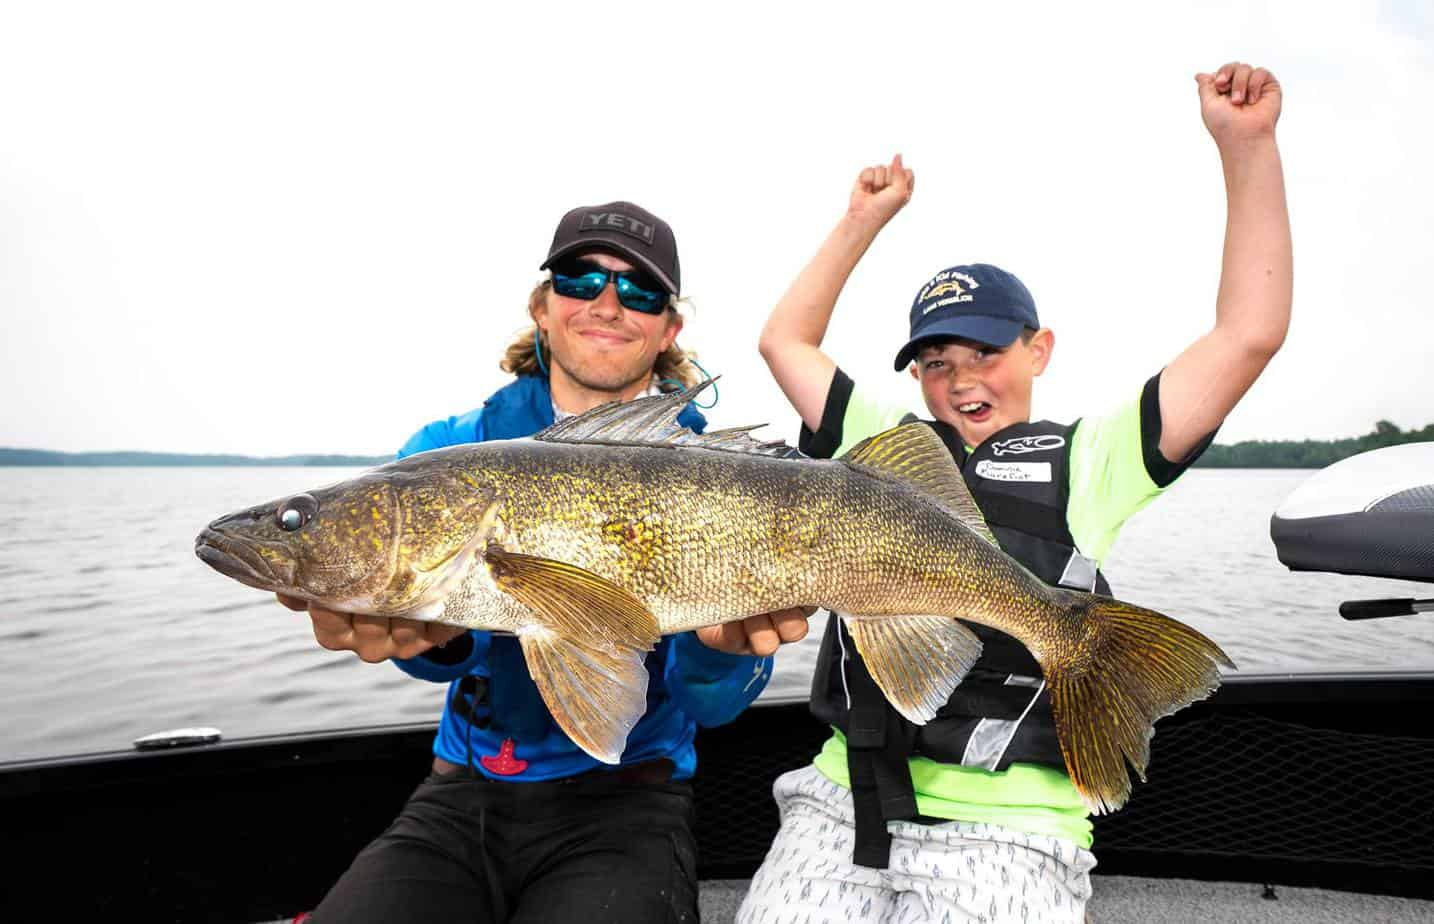 Lake Vermilion (MN) Fishing Report – Jarek Wujkowski